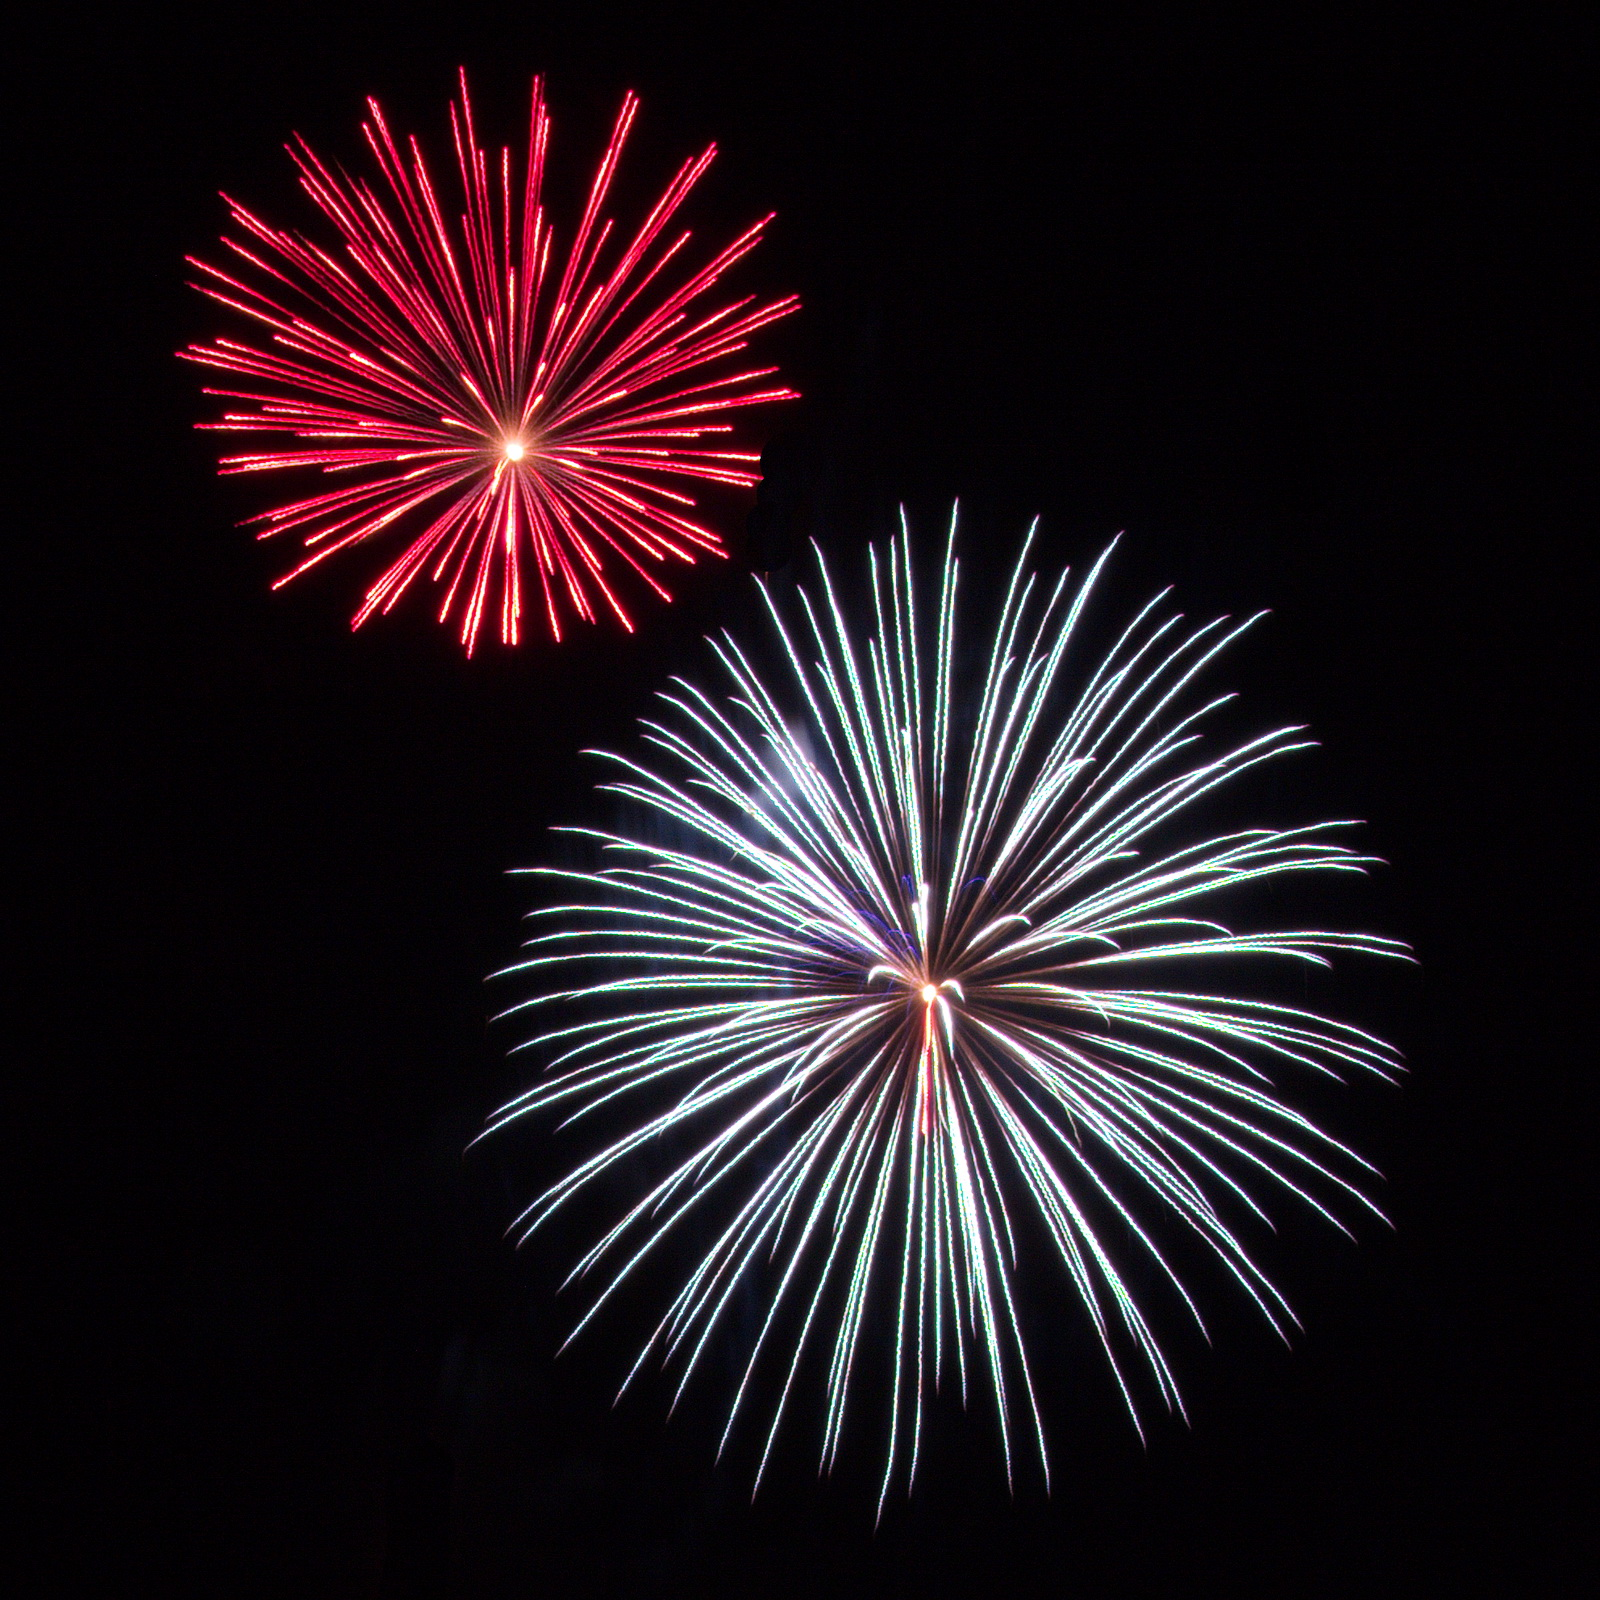 Northeast Massachusetts Fireworks: red and white bursts